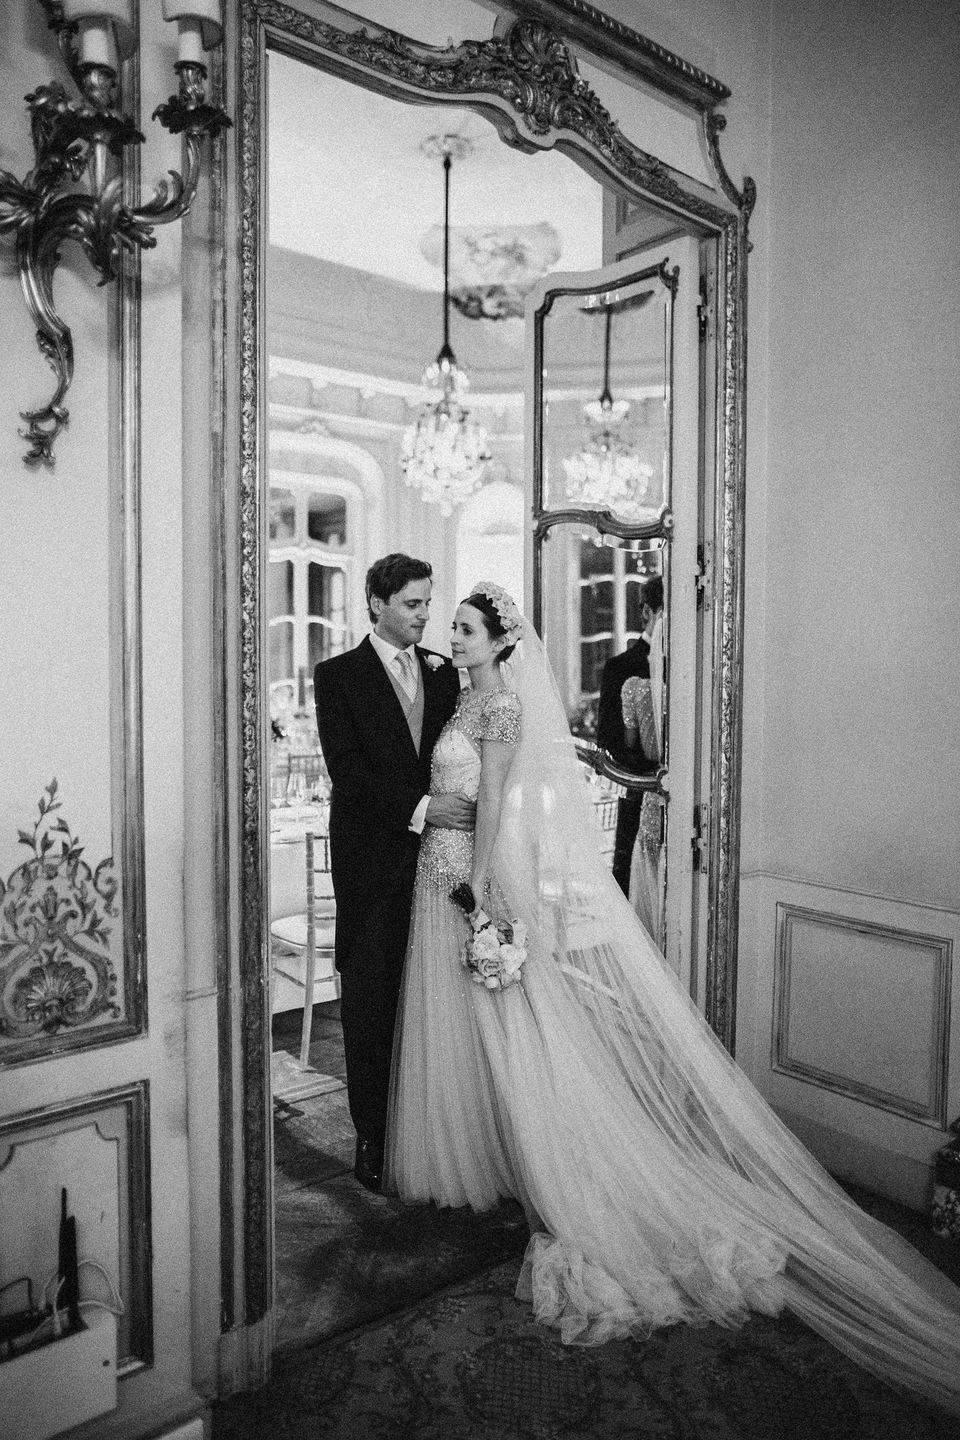 <p><strong>Wedding dress:</strong> Jenny Packham</p><p><strong>Veil:</strong> The Wedding Club</p><p><strong>Shoes:</strong> Aquazzura</p><p><strong>Headdress:</strong> Magnetic Midnight</p>